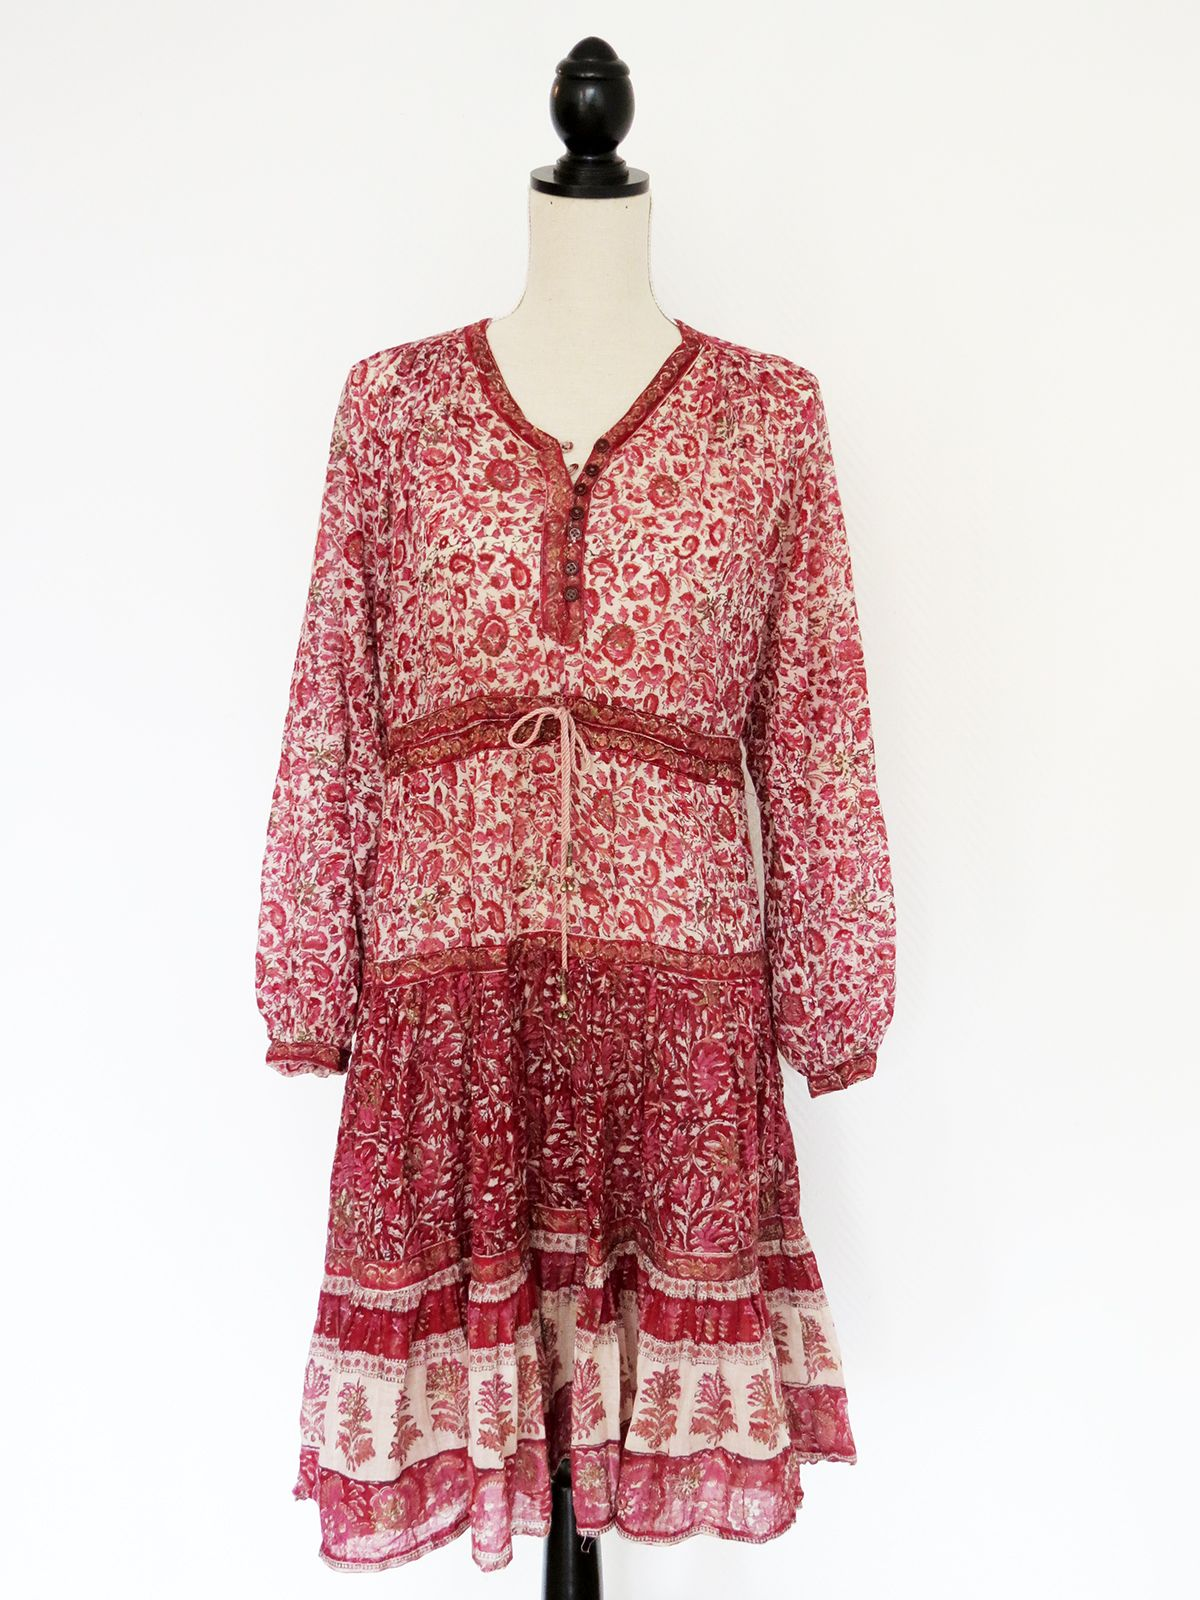 FLORAL INDIAN COTTON DRESS www.theasvintage.com